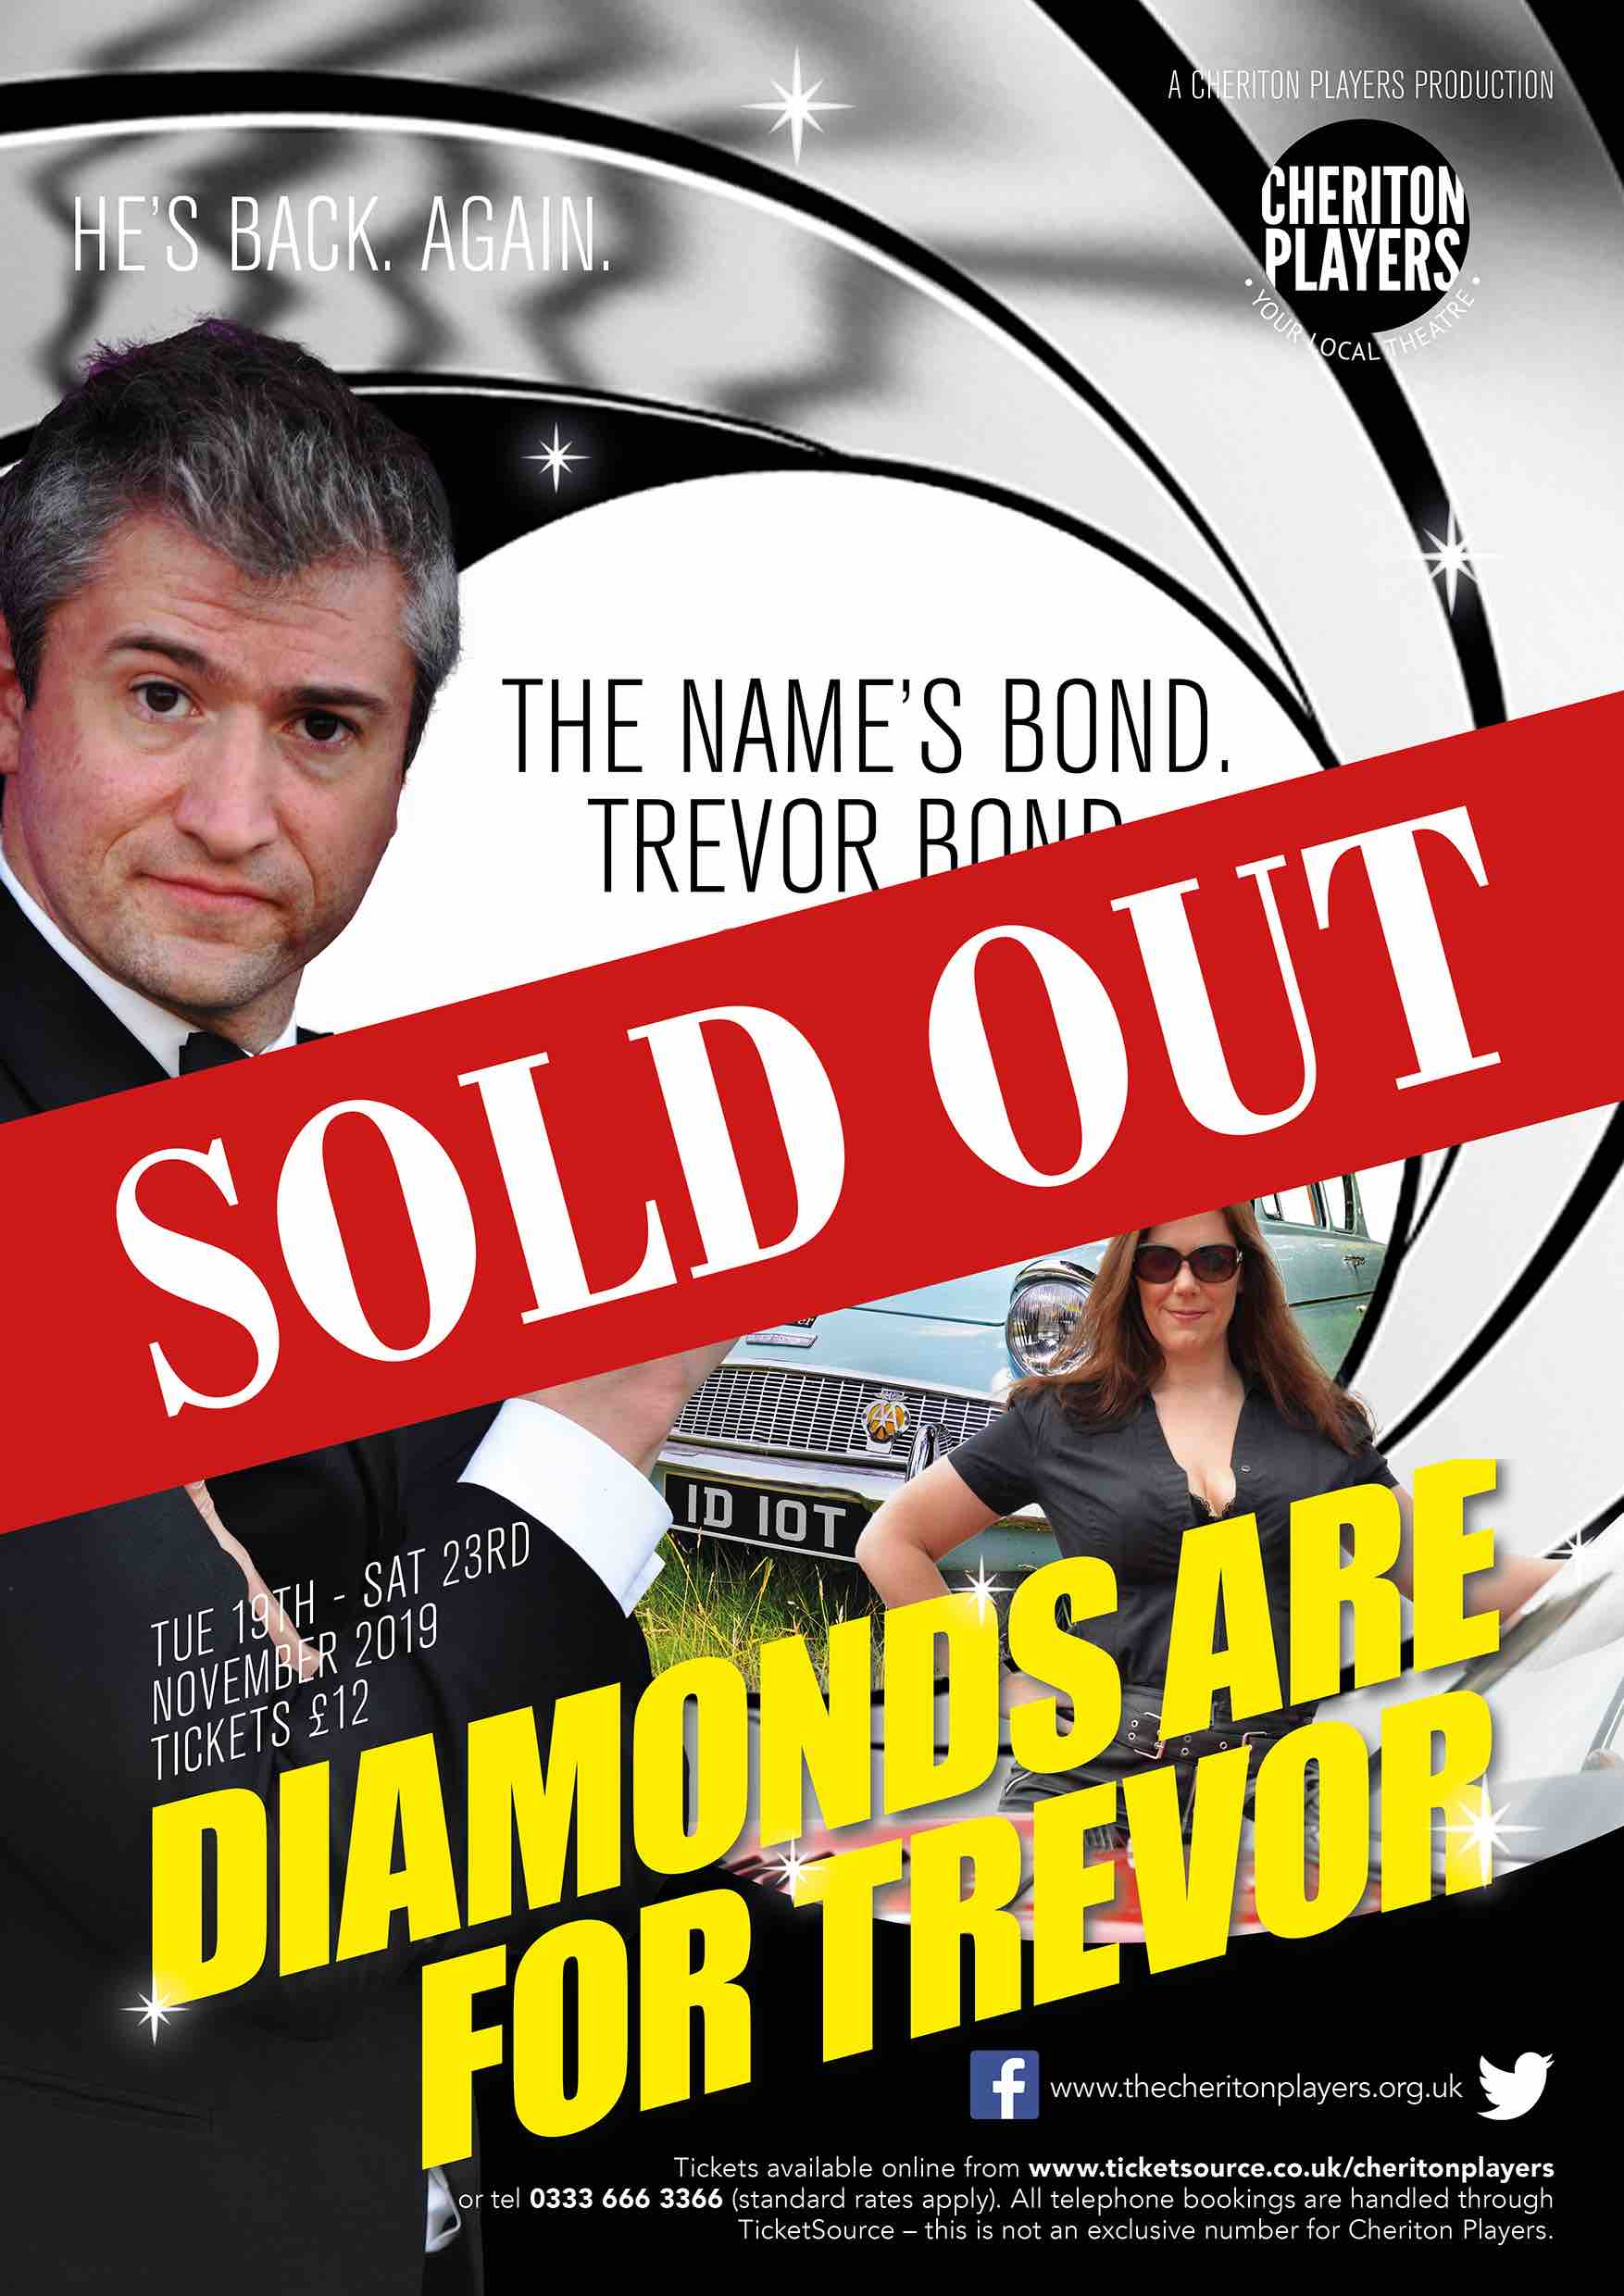 Diamonds are for Trevor